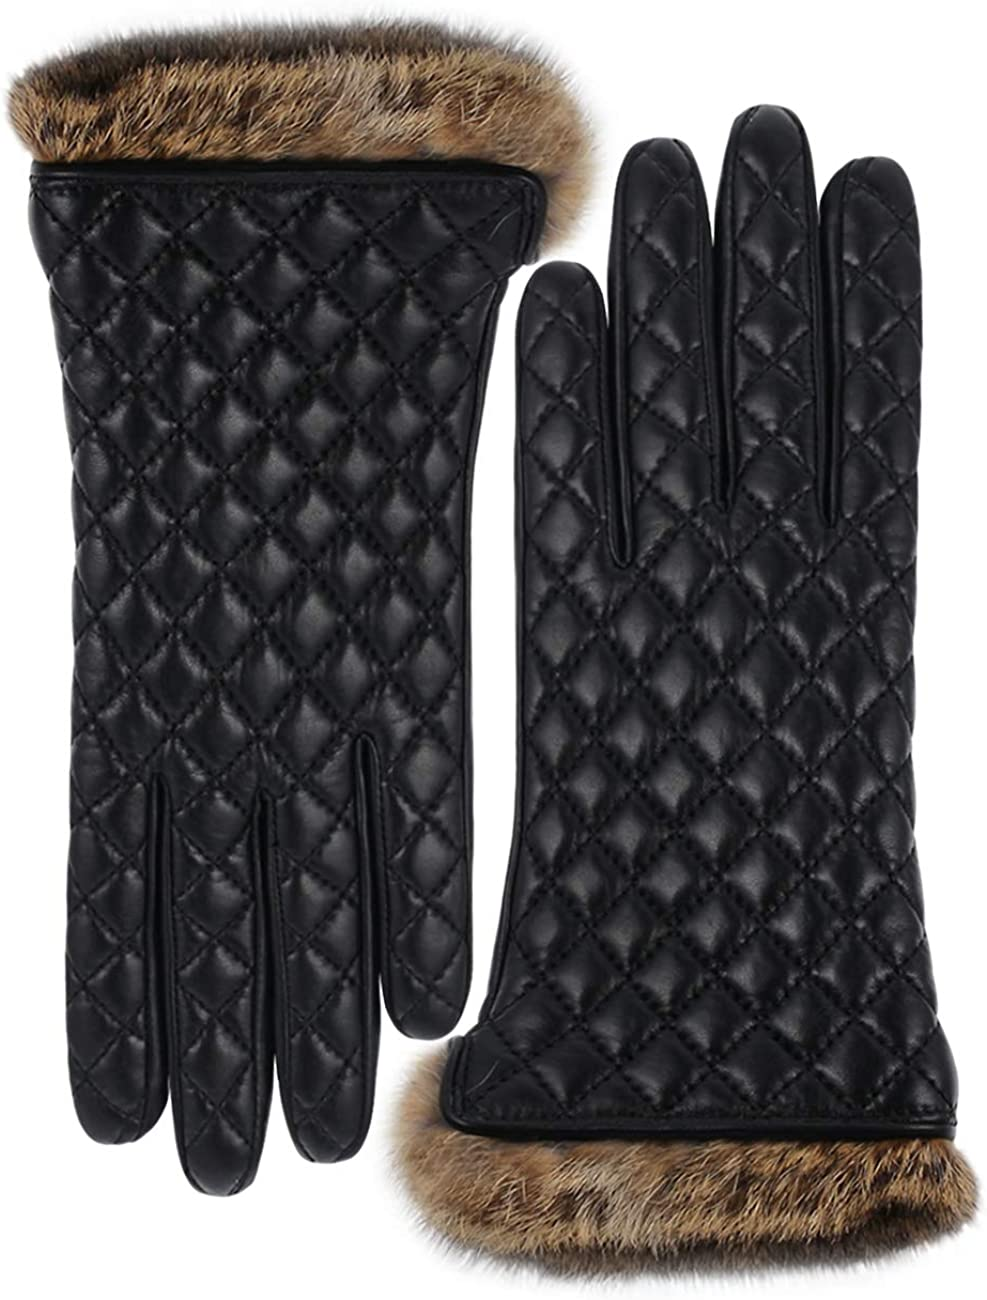 Vikideer Winter Warm Cashmere Lining Rabbit Fur Cuffs Leather Gloves for Women Touchscreen Cashmere Lined